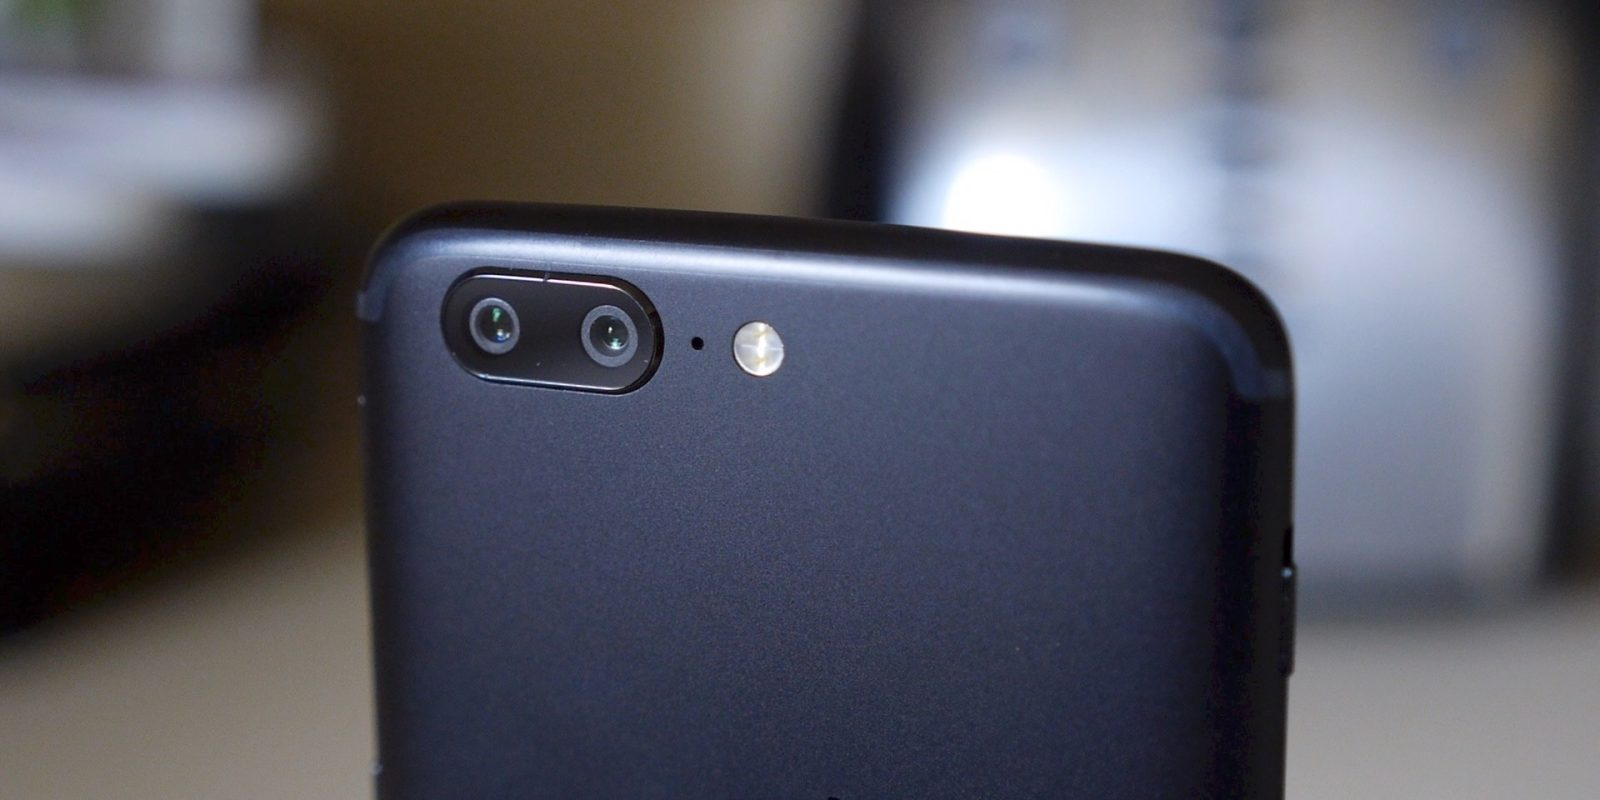 Hands-on: Google Camera with HDR+ on non-Google phones